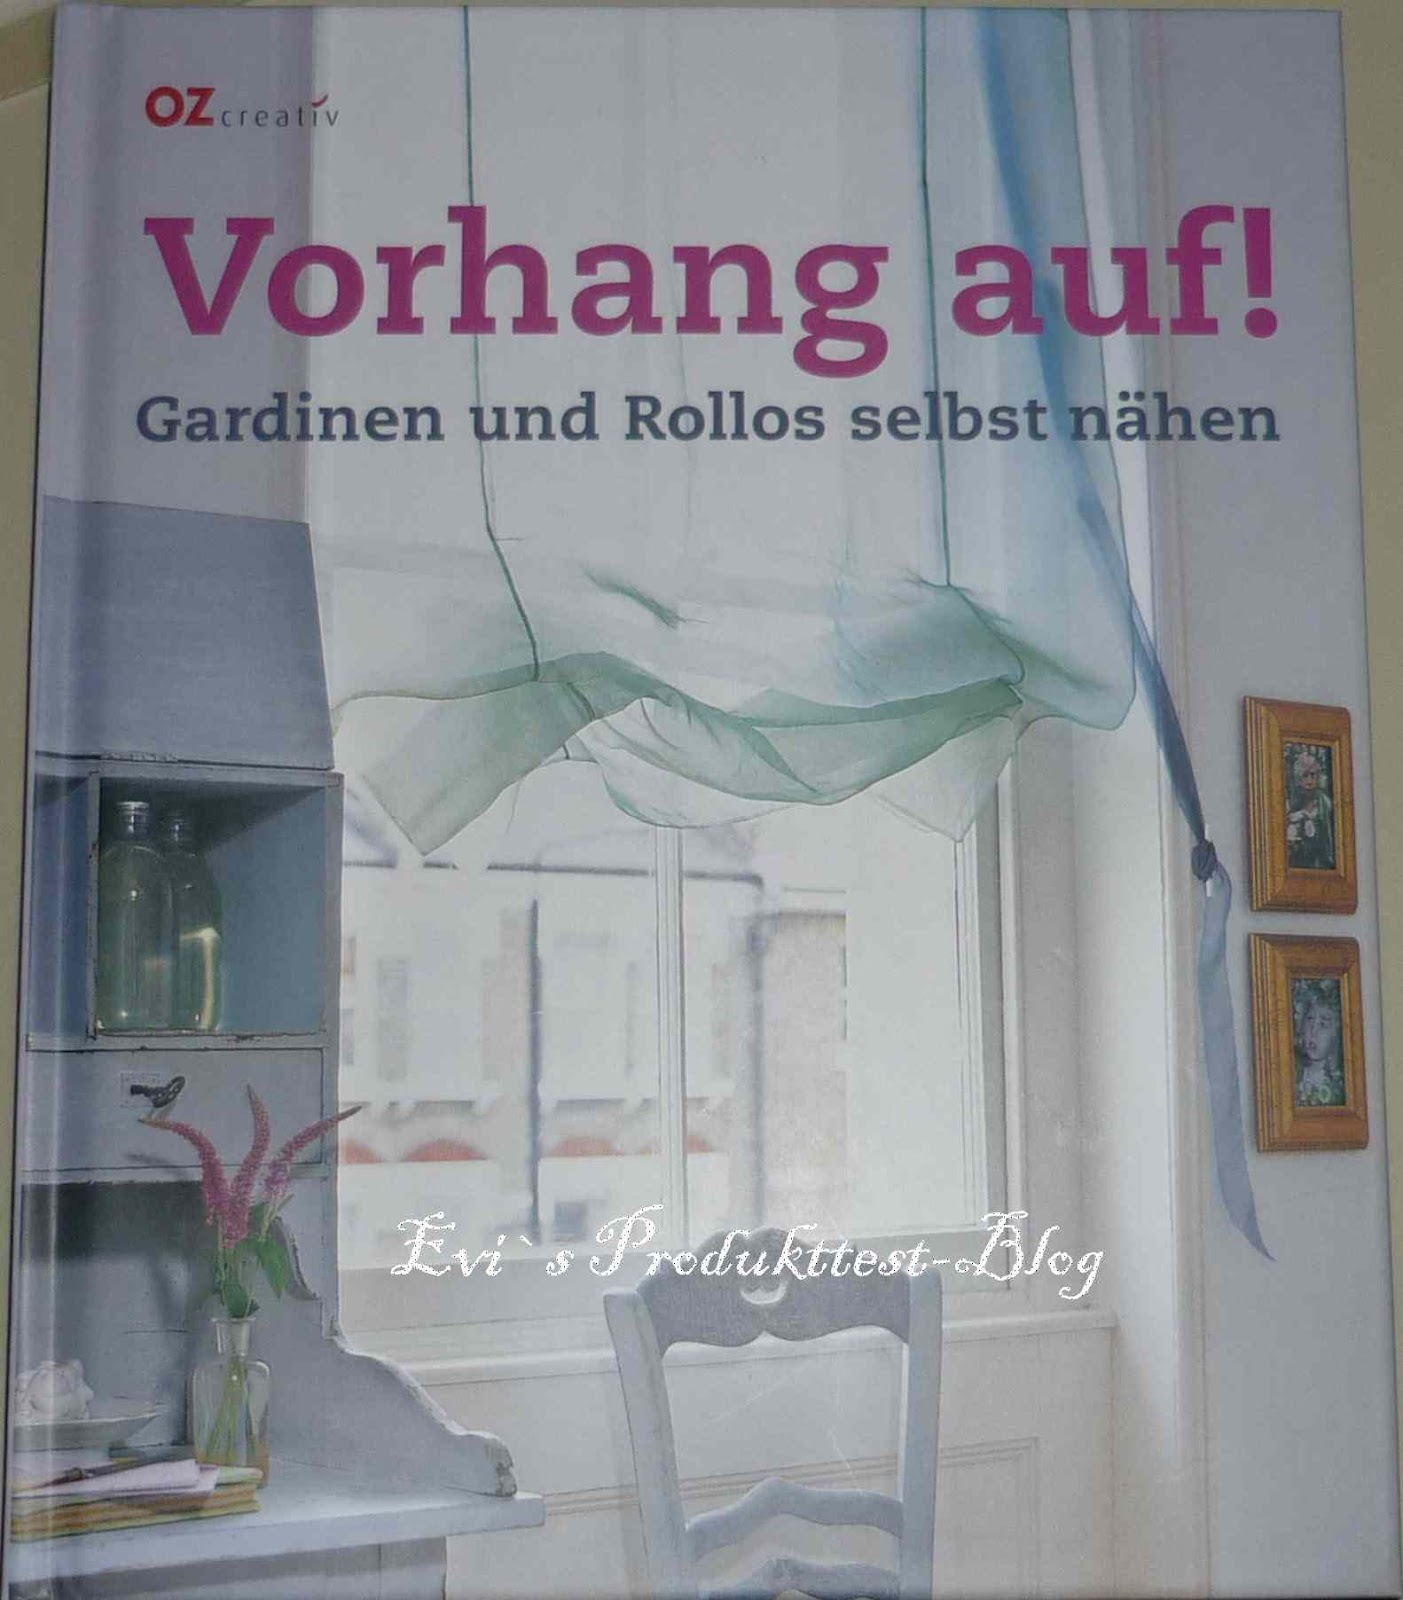 evi s produkttestblog buch vorhang auf gardinen und rollos selbst n hen. Black Bedroom Furniture Sets. Home Design Ideas